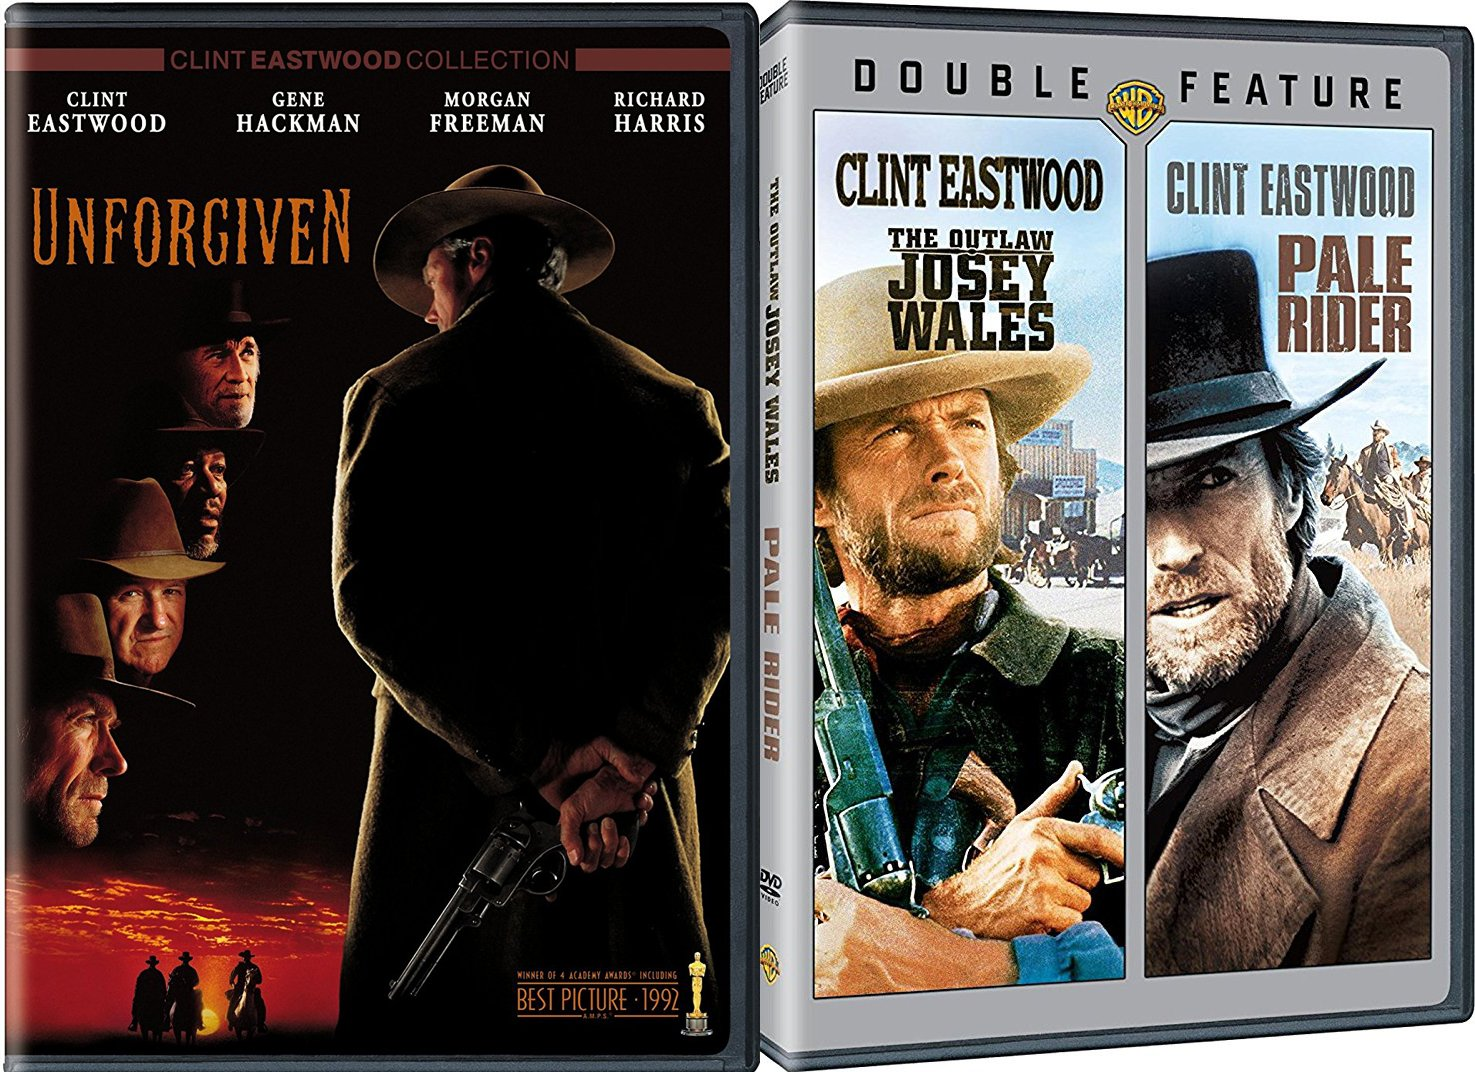 Unforgiven + The Outlaw Josey Wales, Pale Rider Clint Eastwood ...